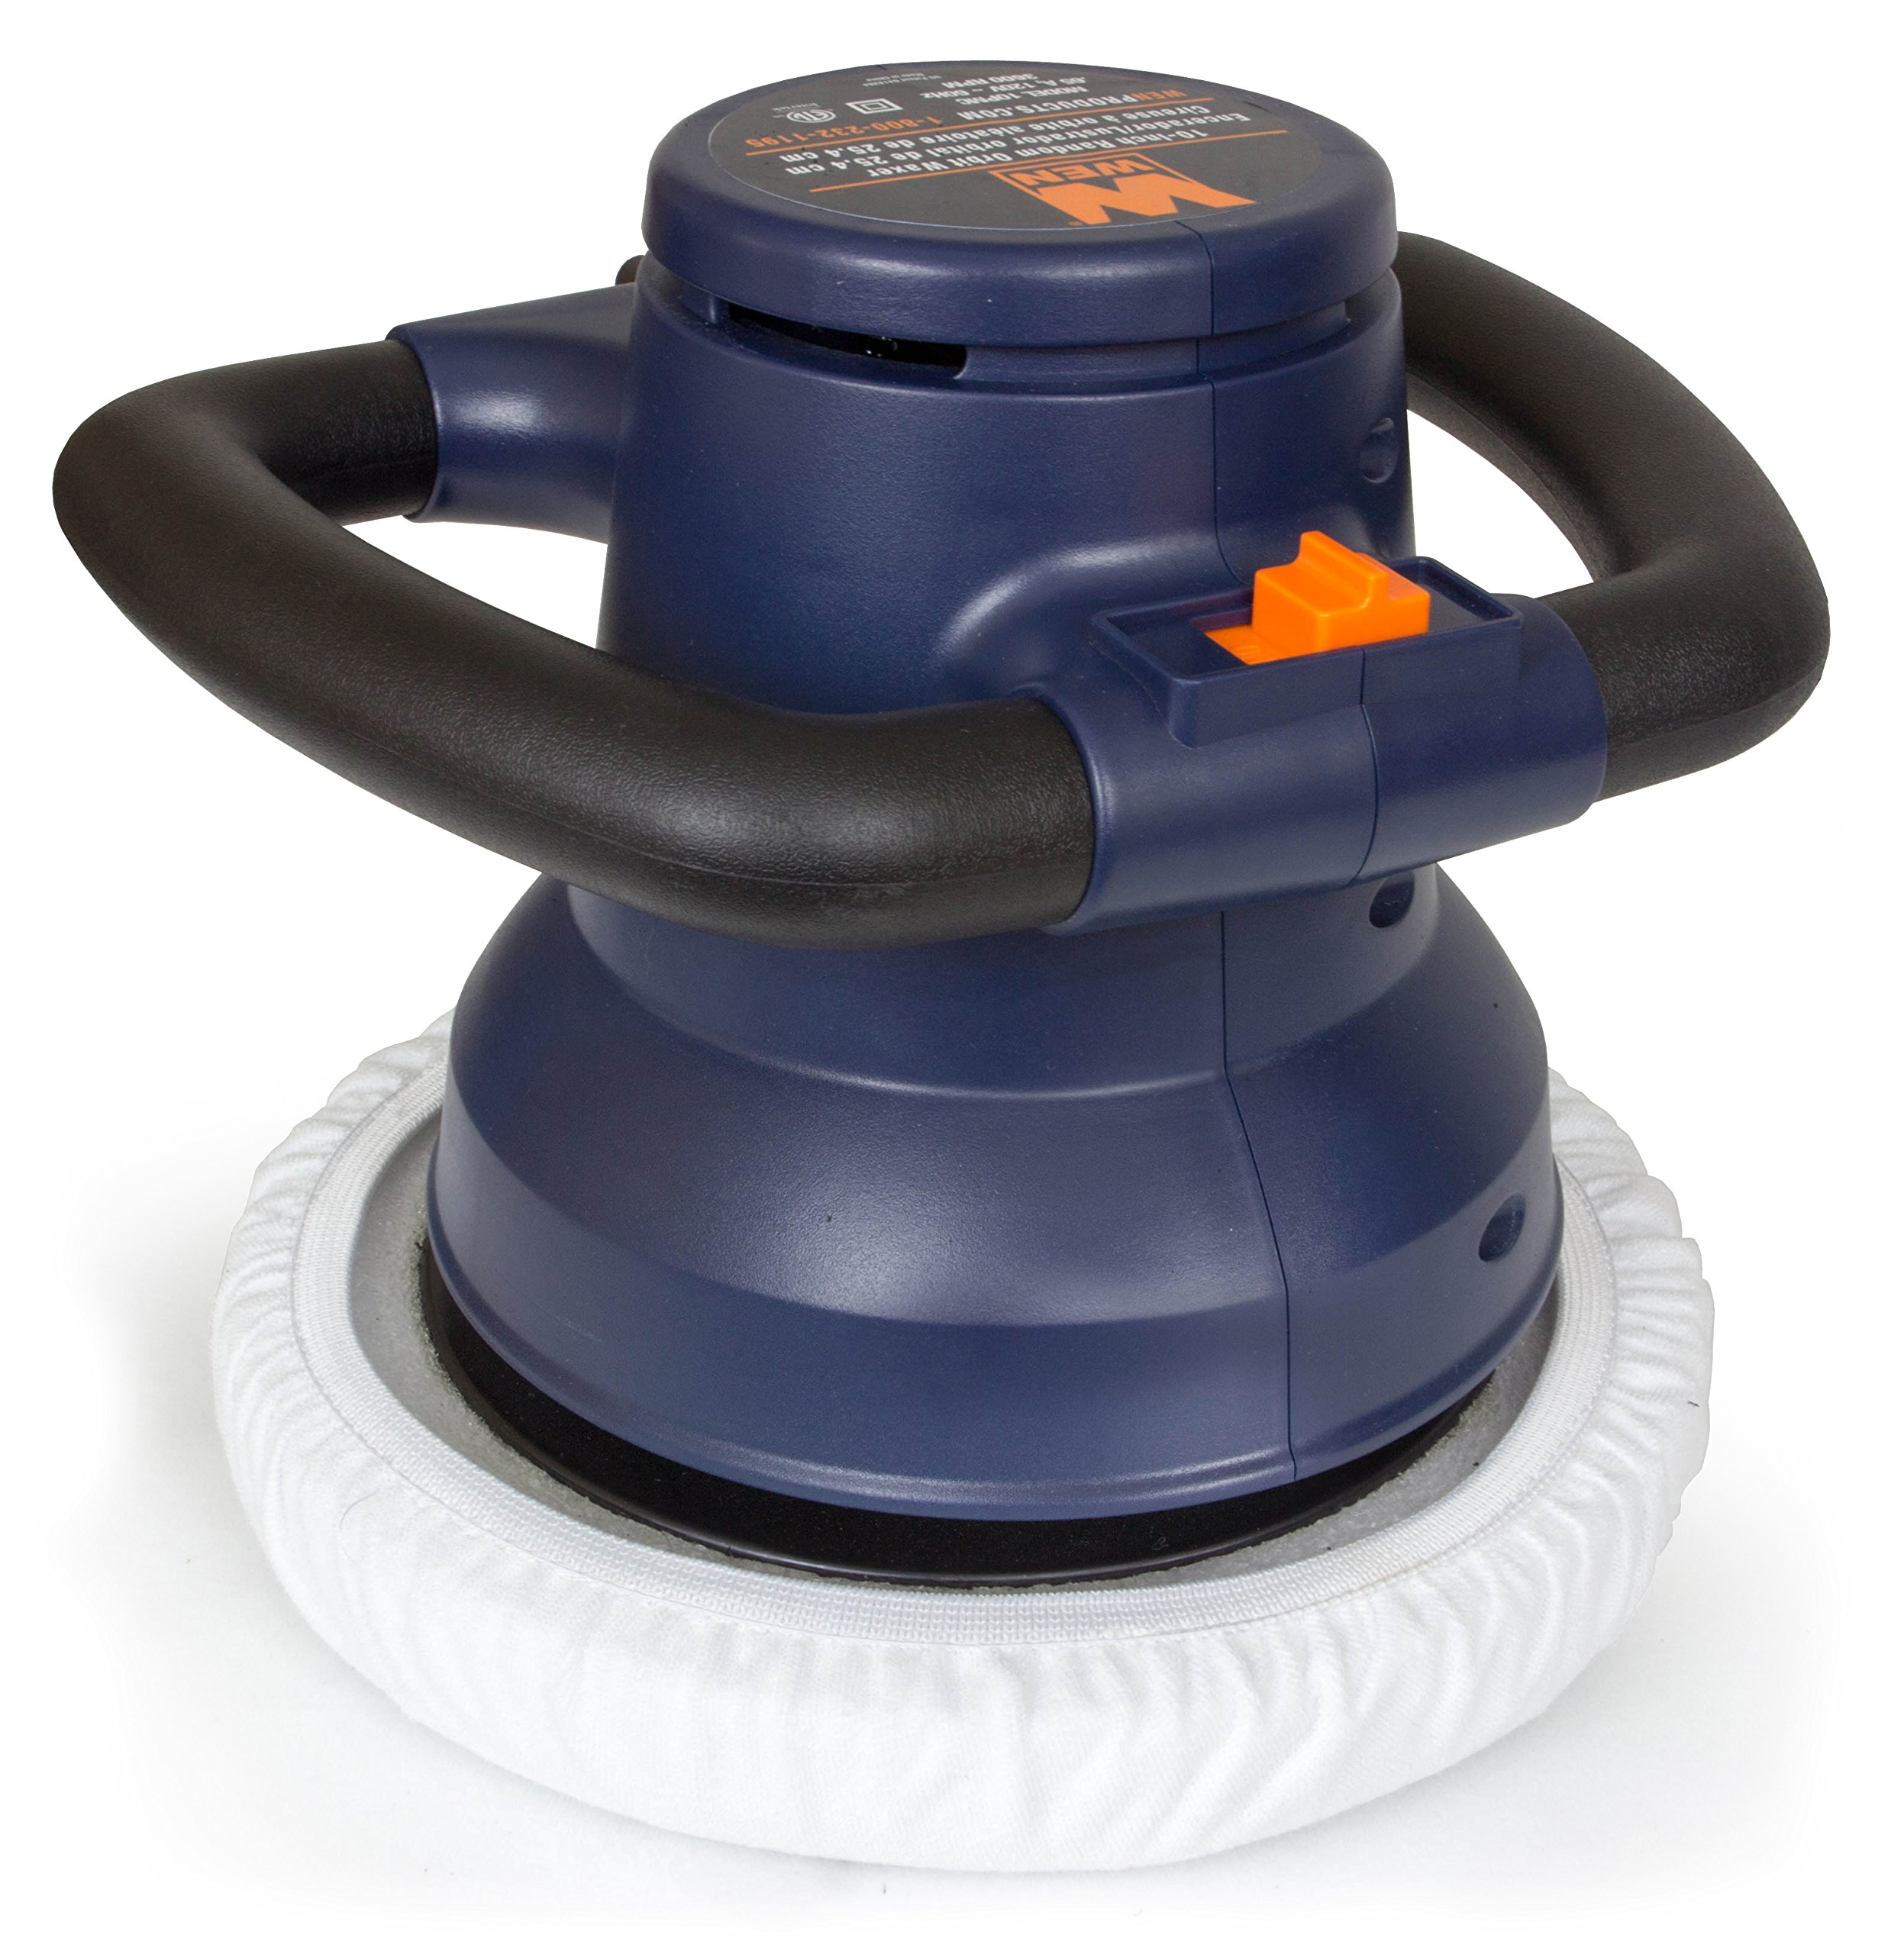 WEN 10PMC 10-Inch Waxer/Polisher in Case with Extra Bonnets by WEN